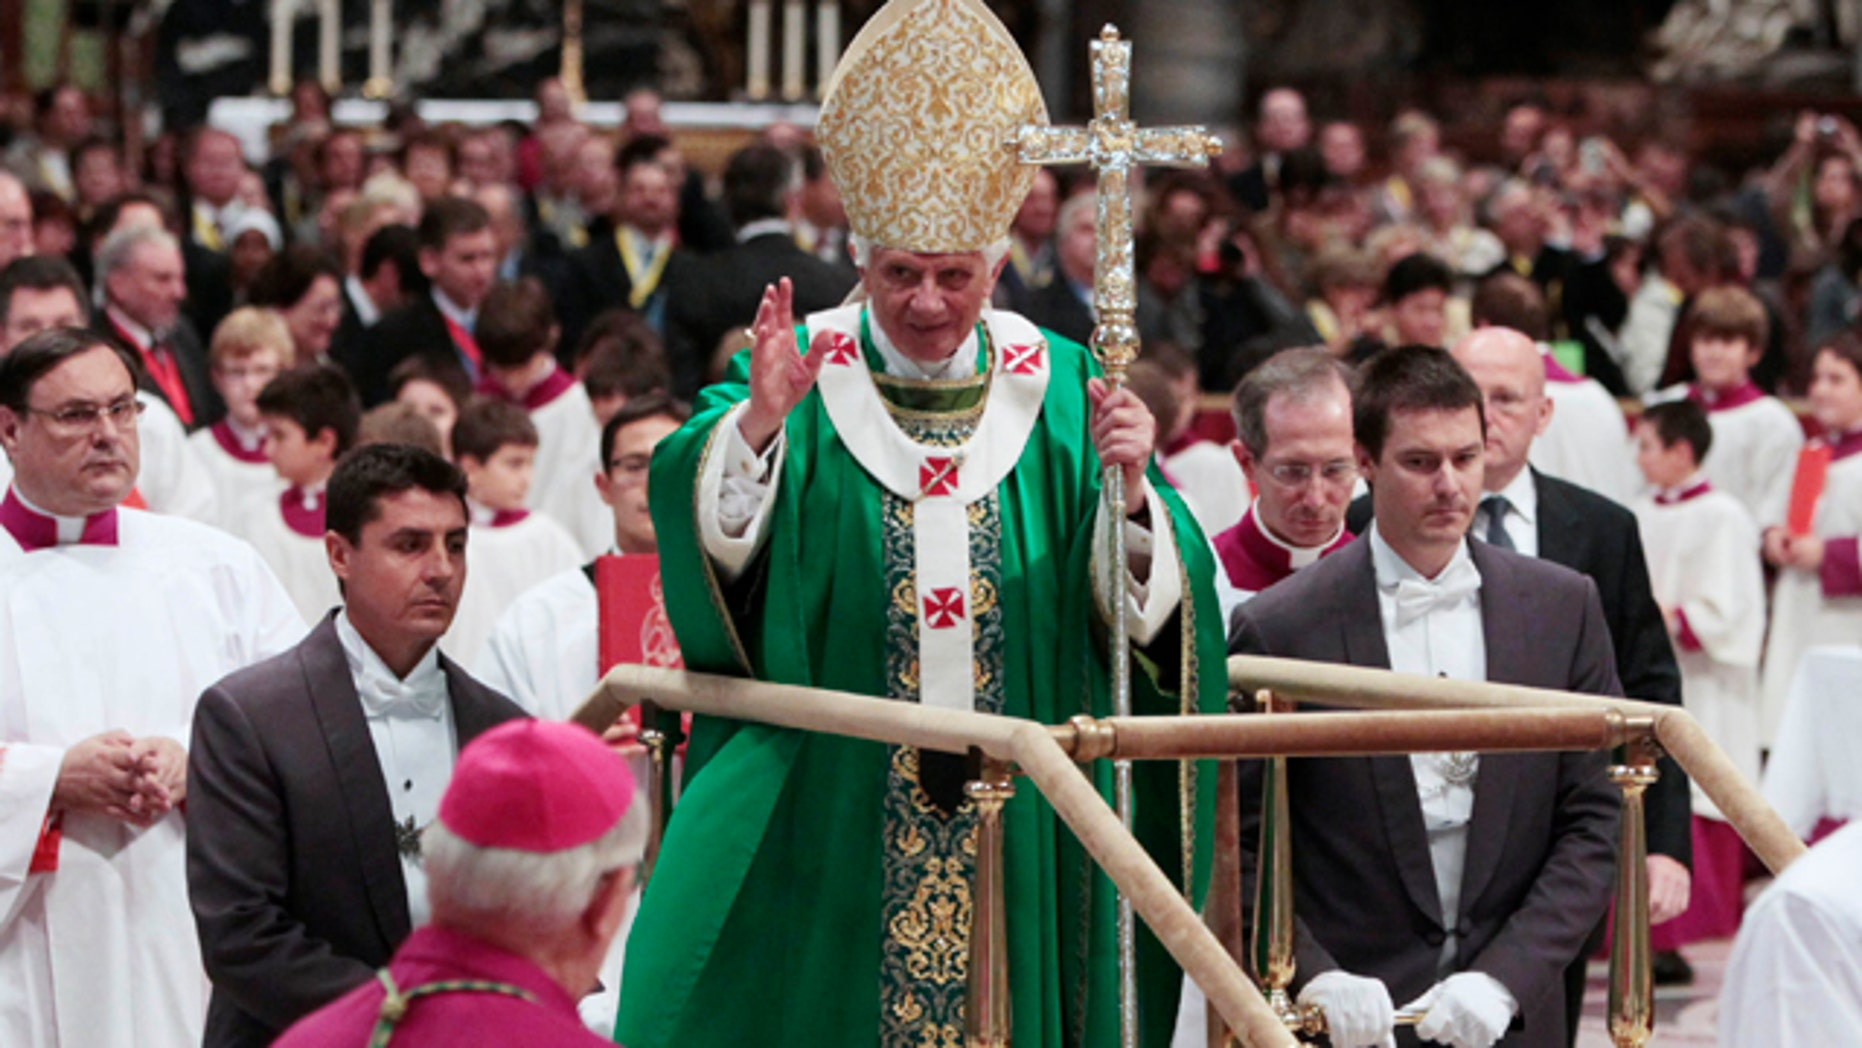 Oct. 16: Pope Benedict XVI stands on a mobile platform as he leaves St. Peter's Basilica at the end of a mass at the Vatican.